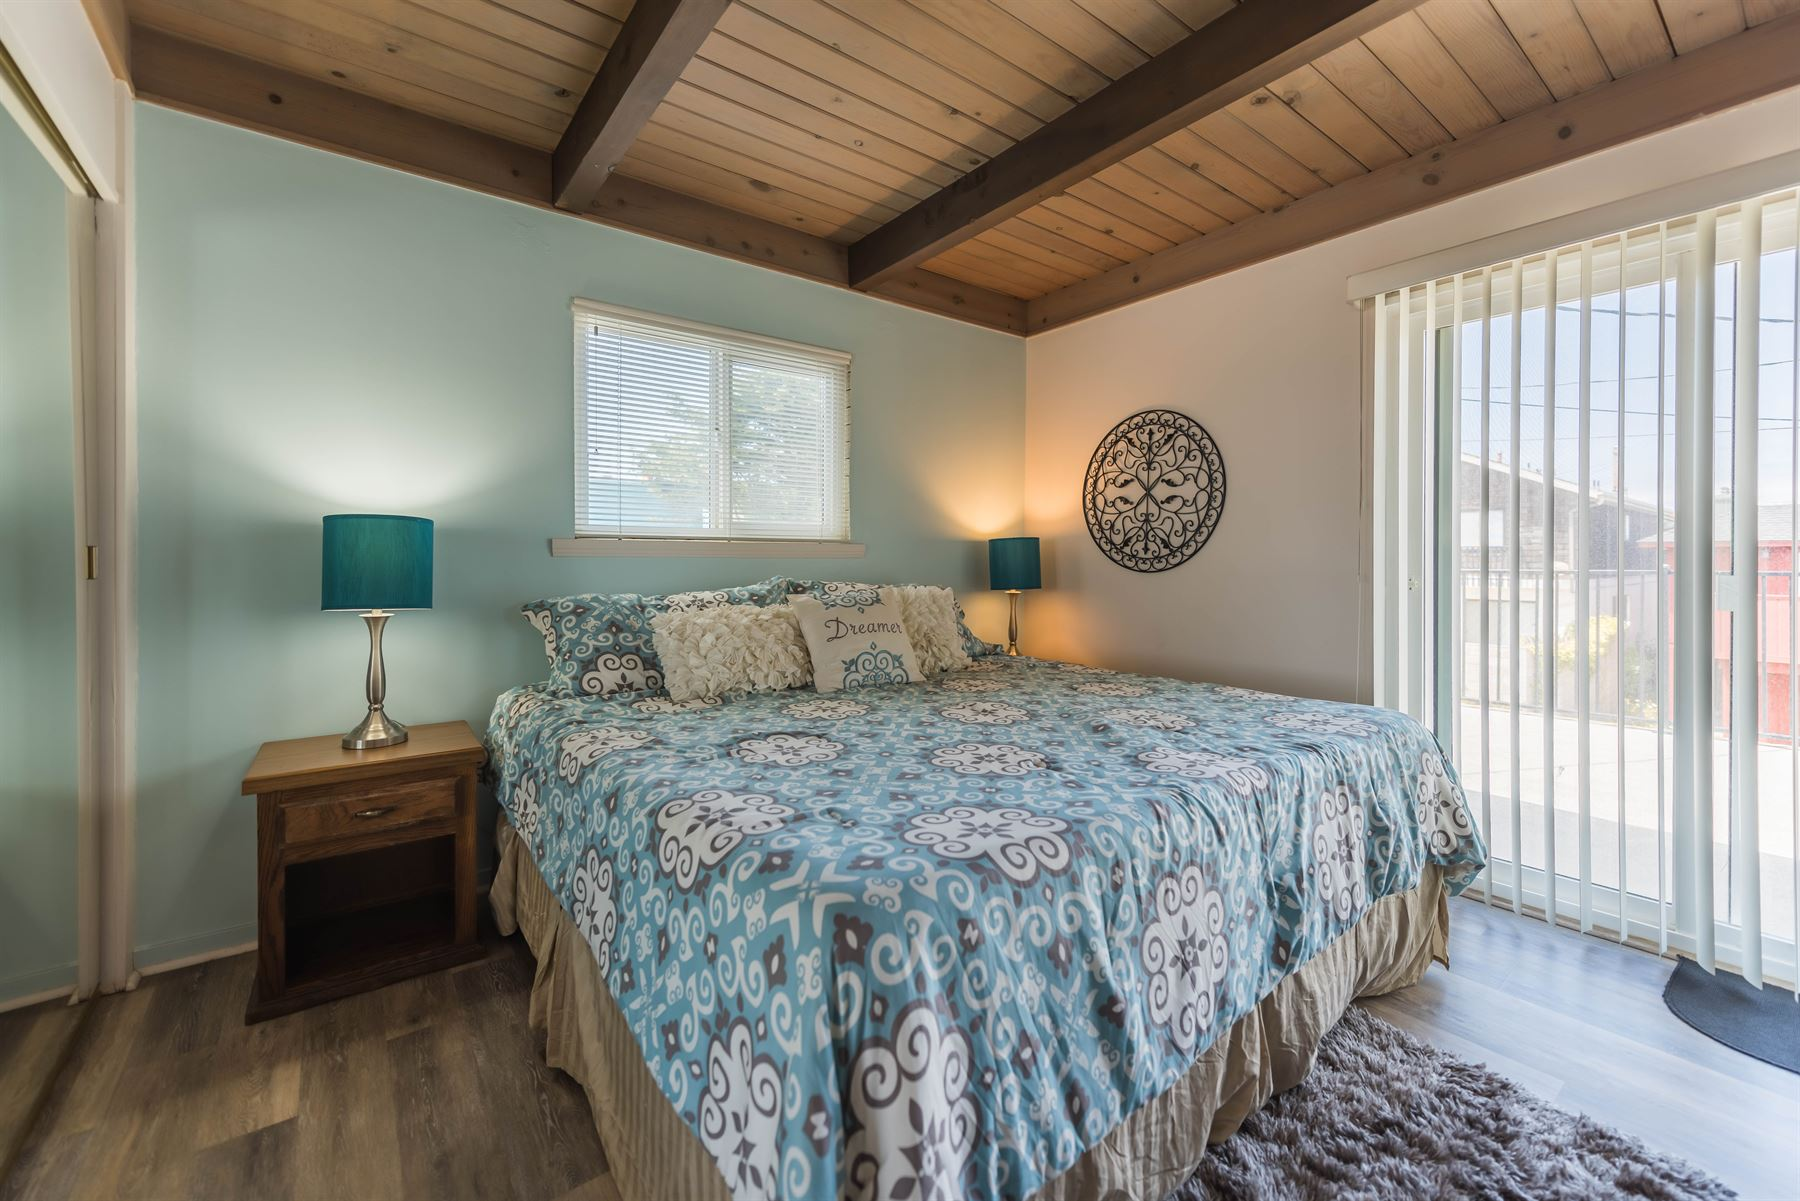 Oceanview Hideaway - Interior - Bedroom with blue and white linens on queen bed